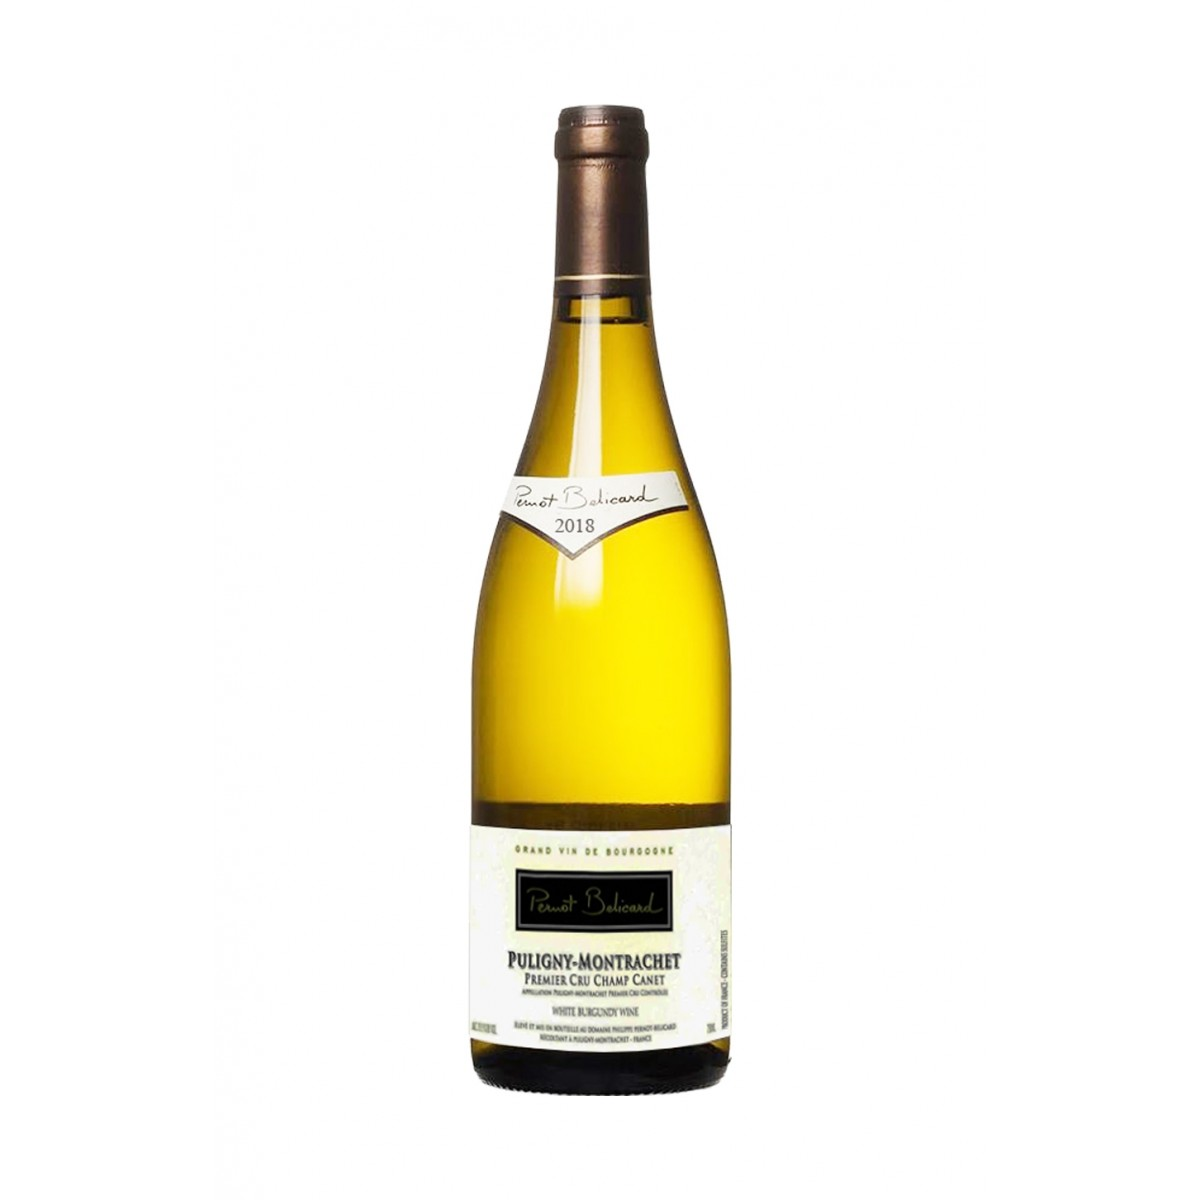 Puligny Montrachet 1er Cru Champ Canet 2018 - Domaine Pernot Belicard